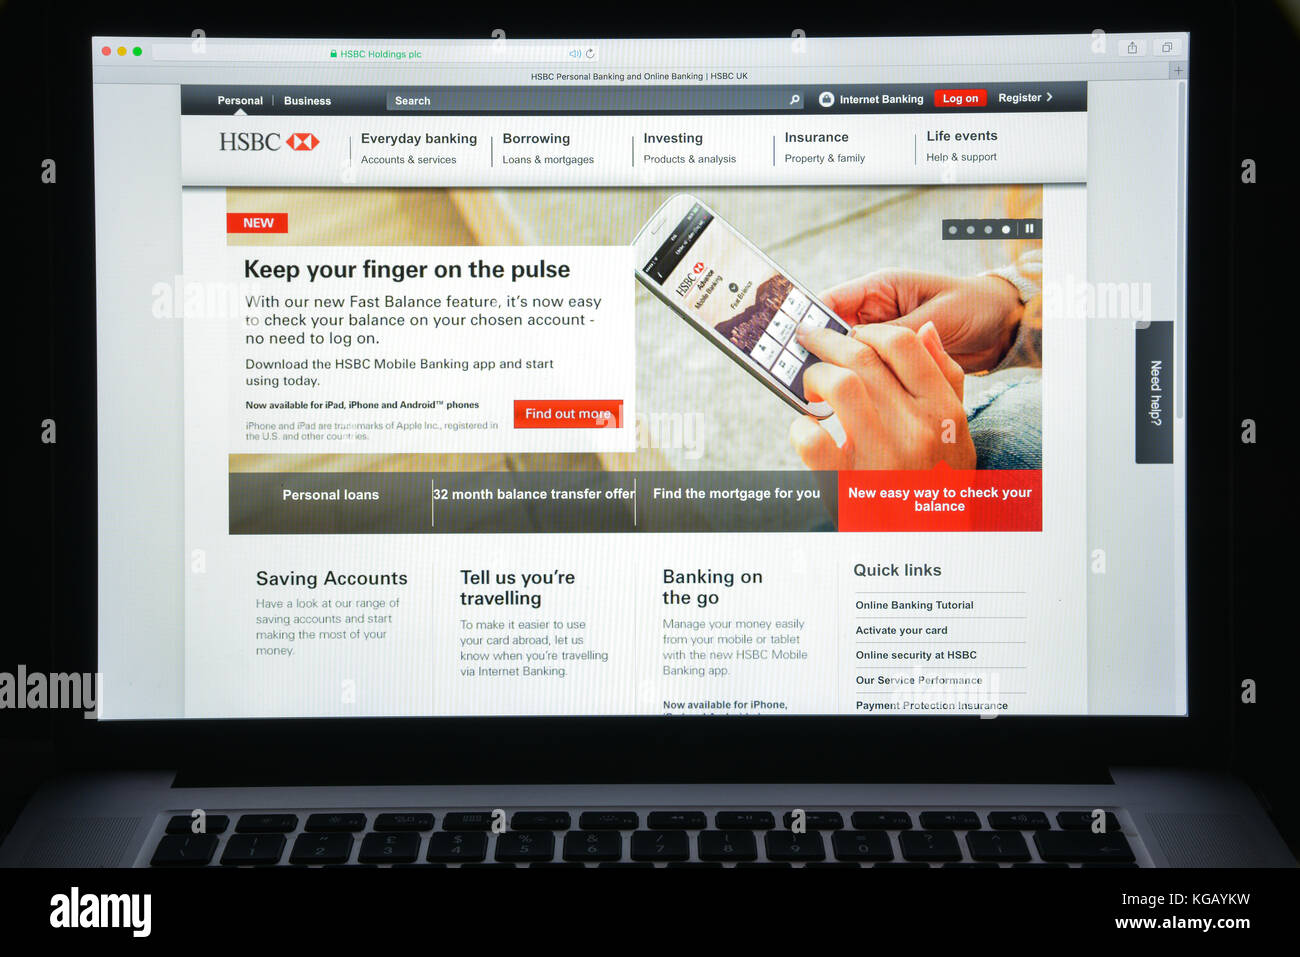 Hsbc Online Banking Website Stock Photos & Hsbc Online Banking